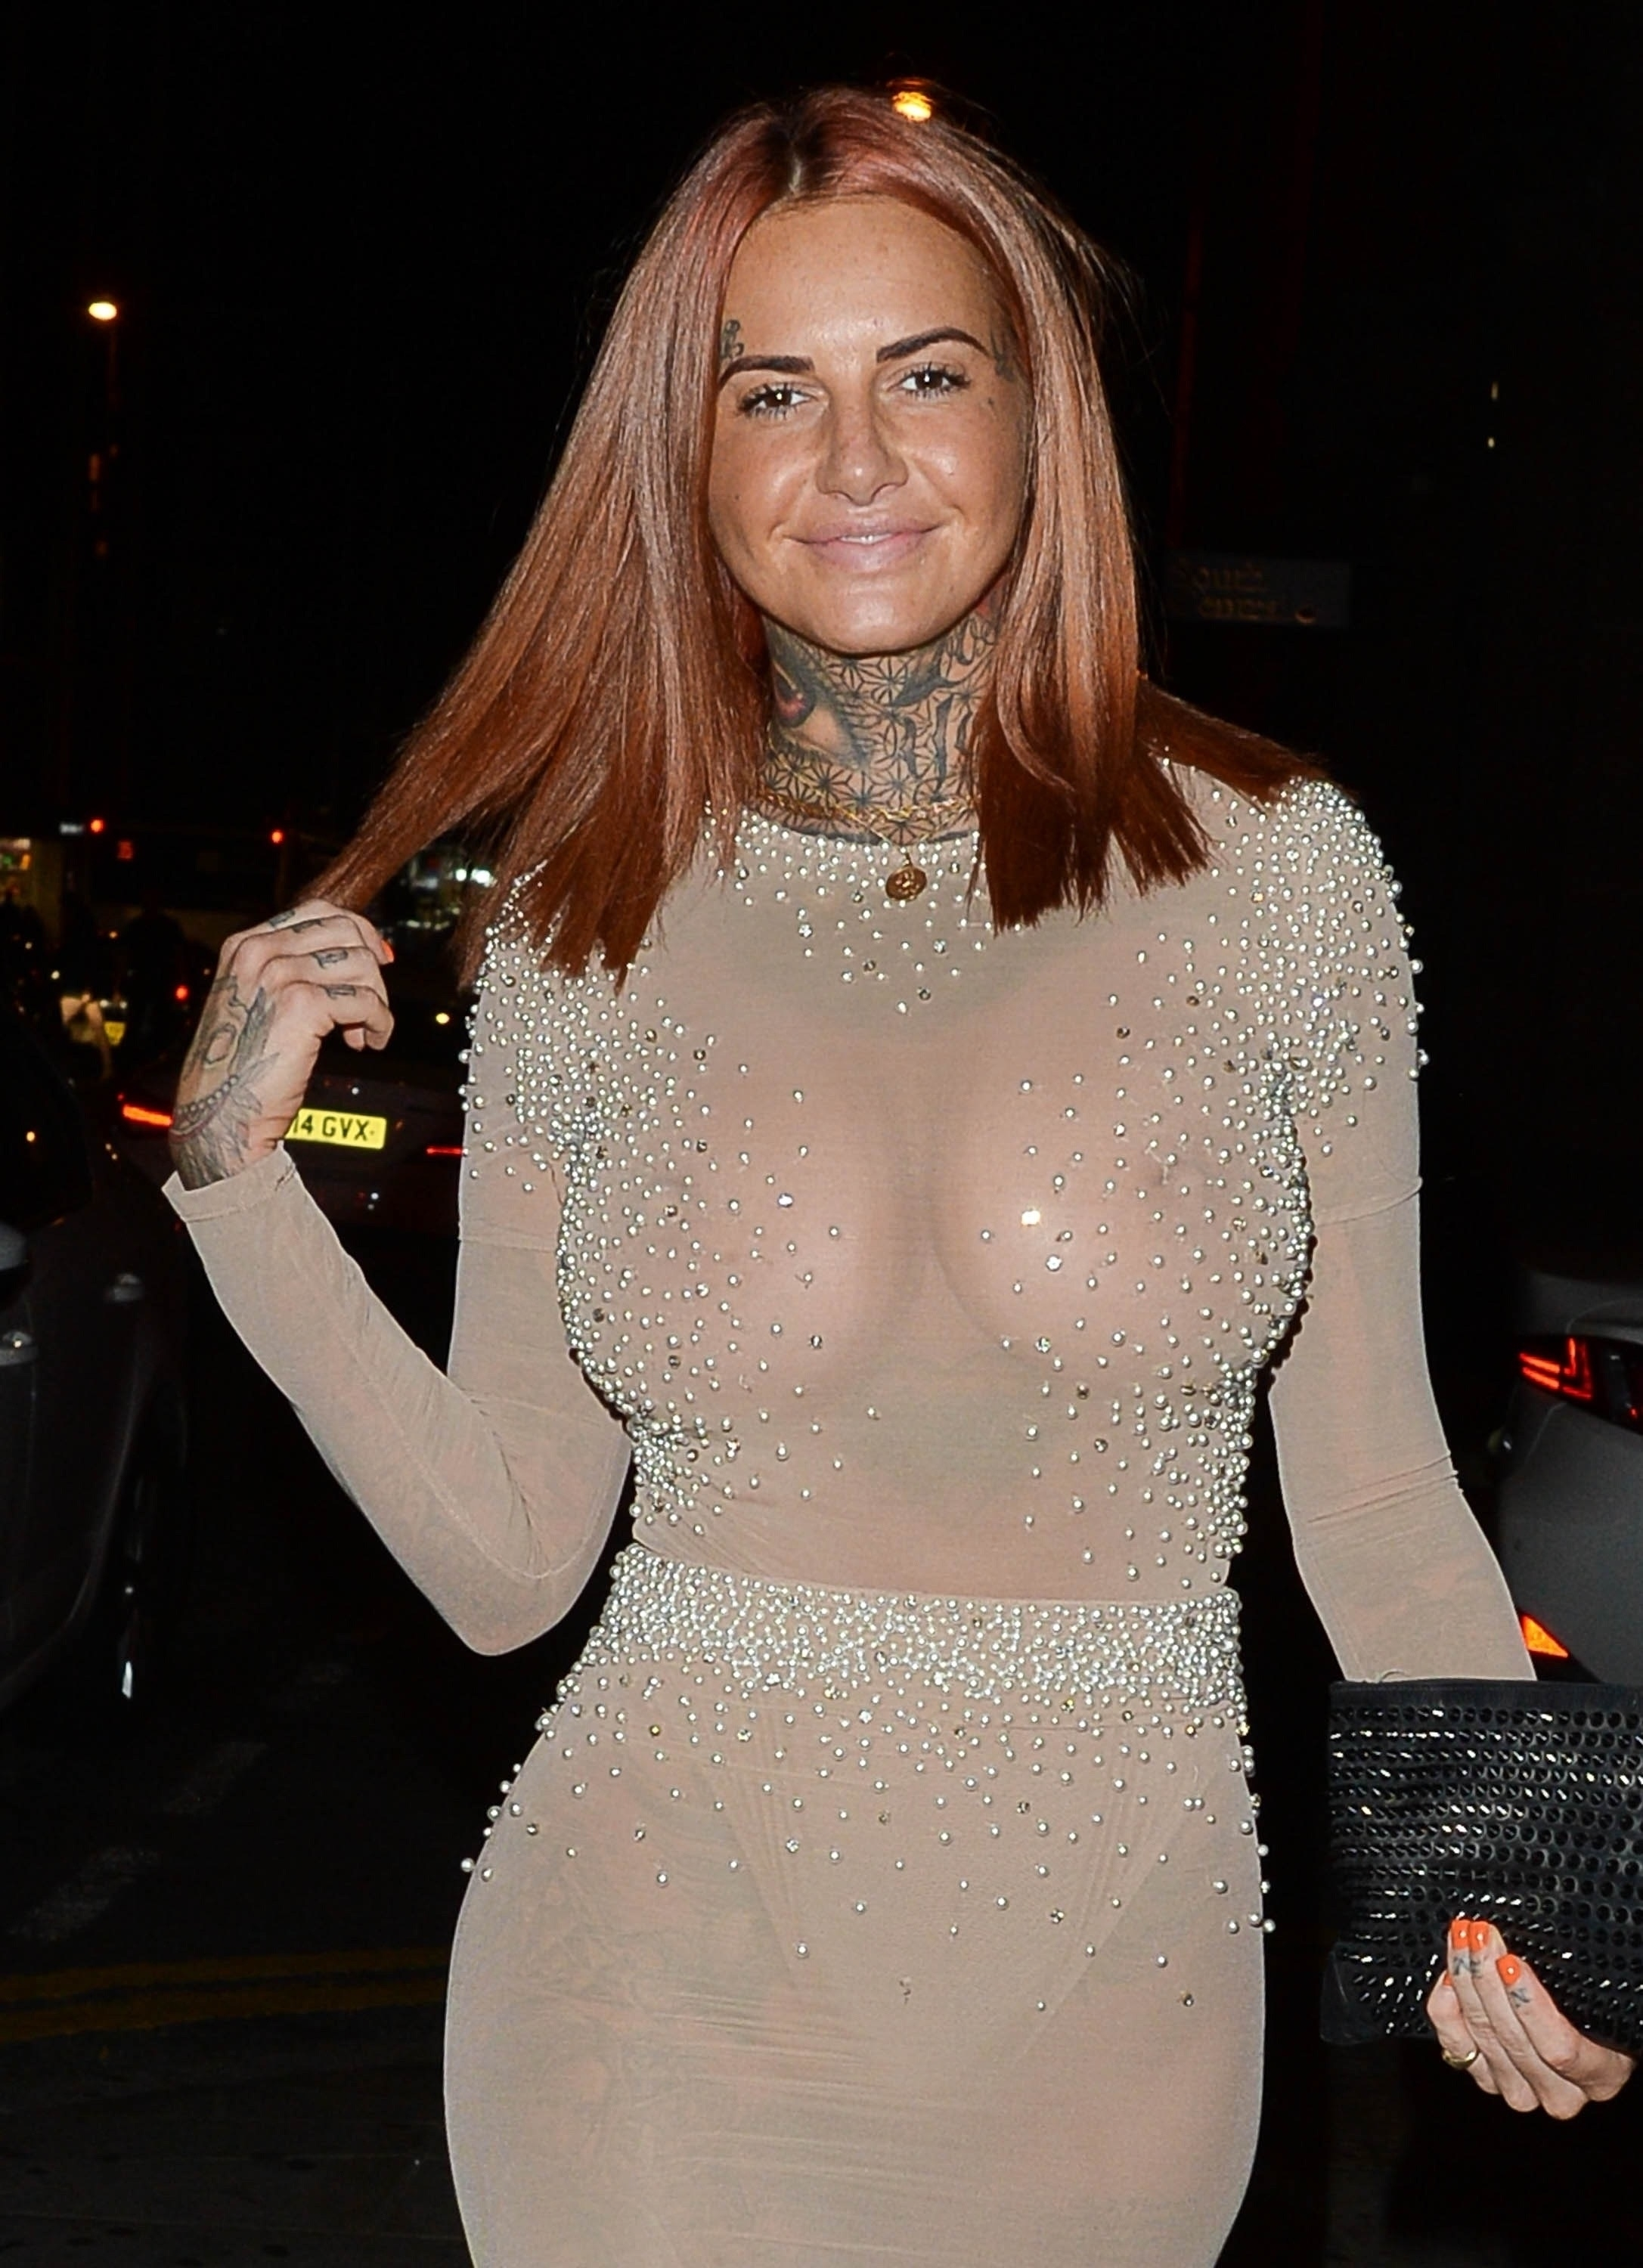 Big tits in see through top